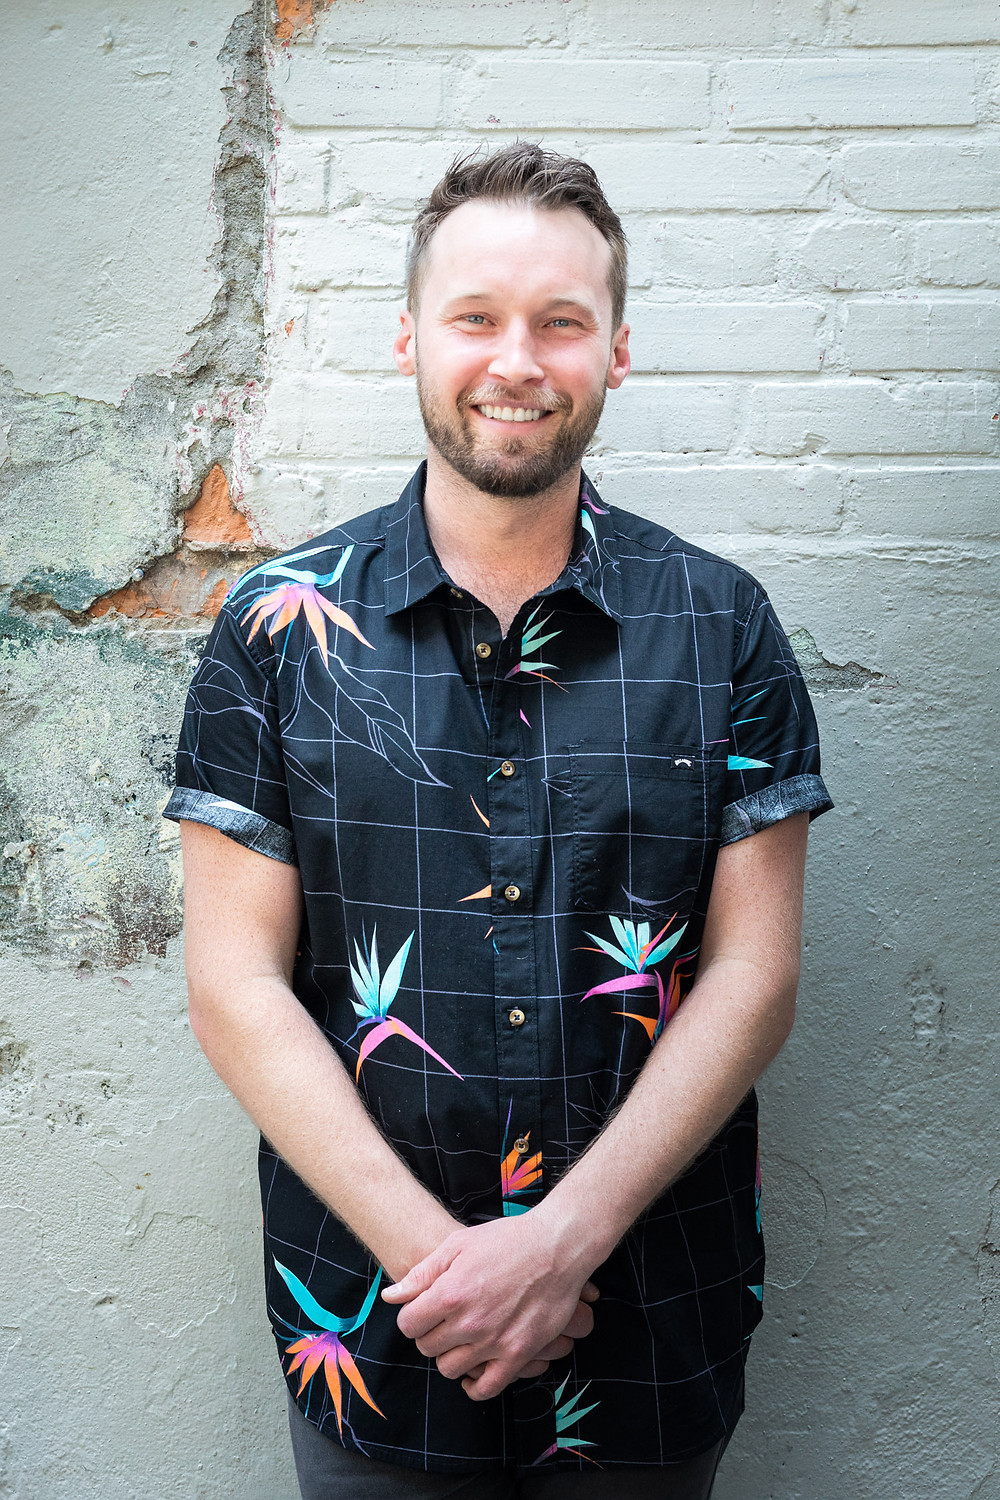 A portrait of David Bulters, head bartender at L'Abattoir in Vancouver